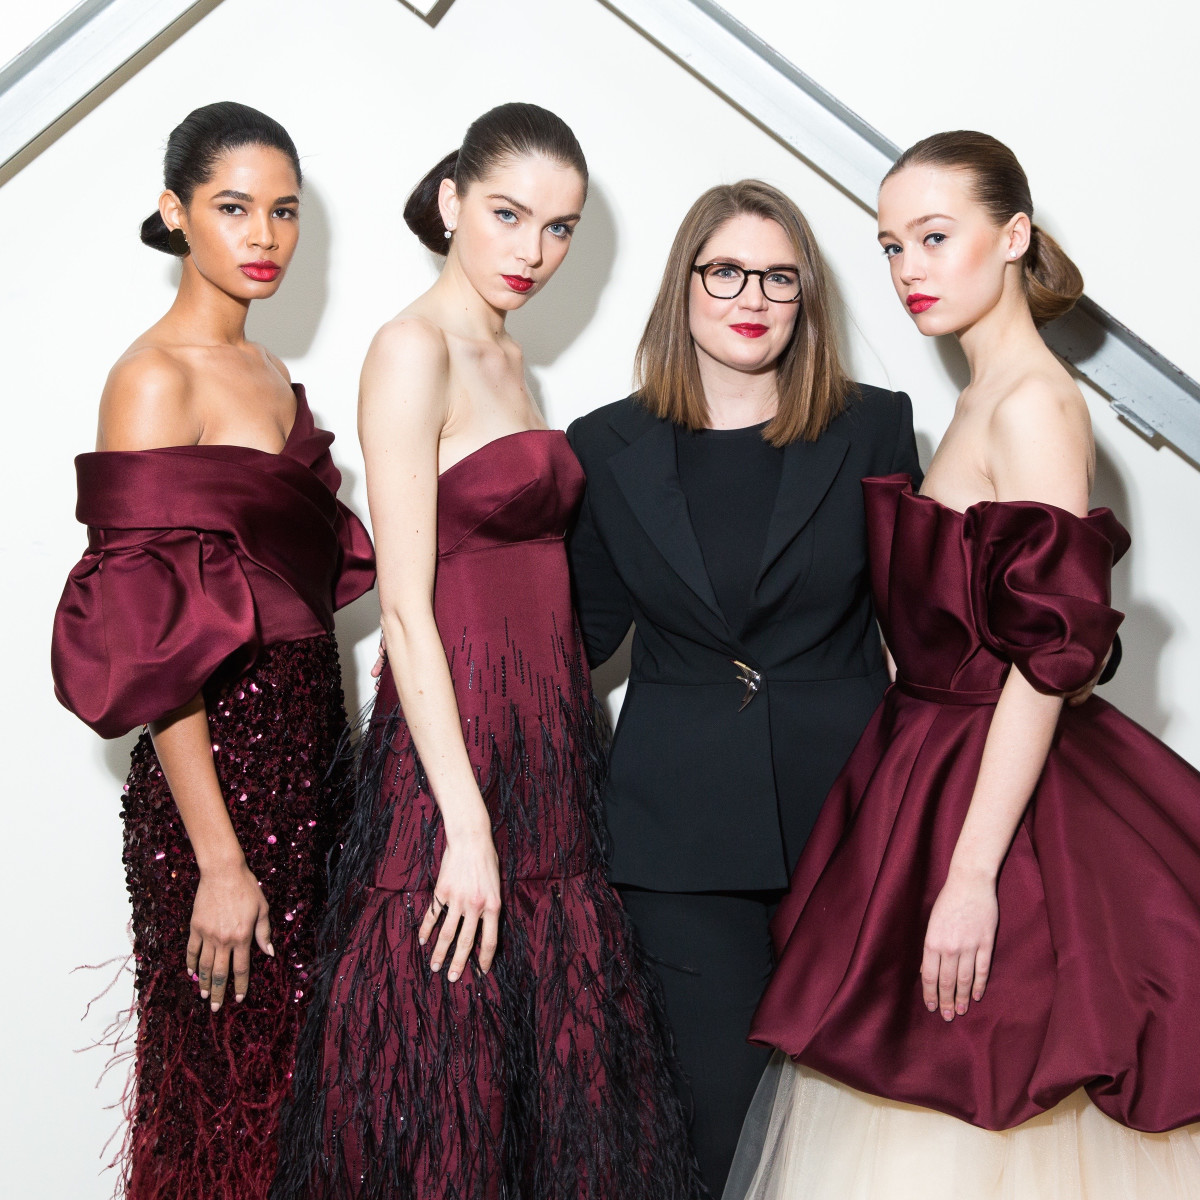 Elizabeth Kennedy fall collection 2017 with models